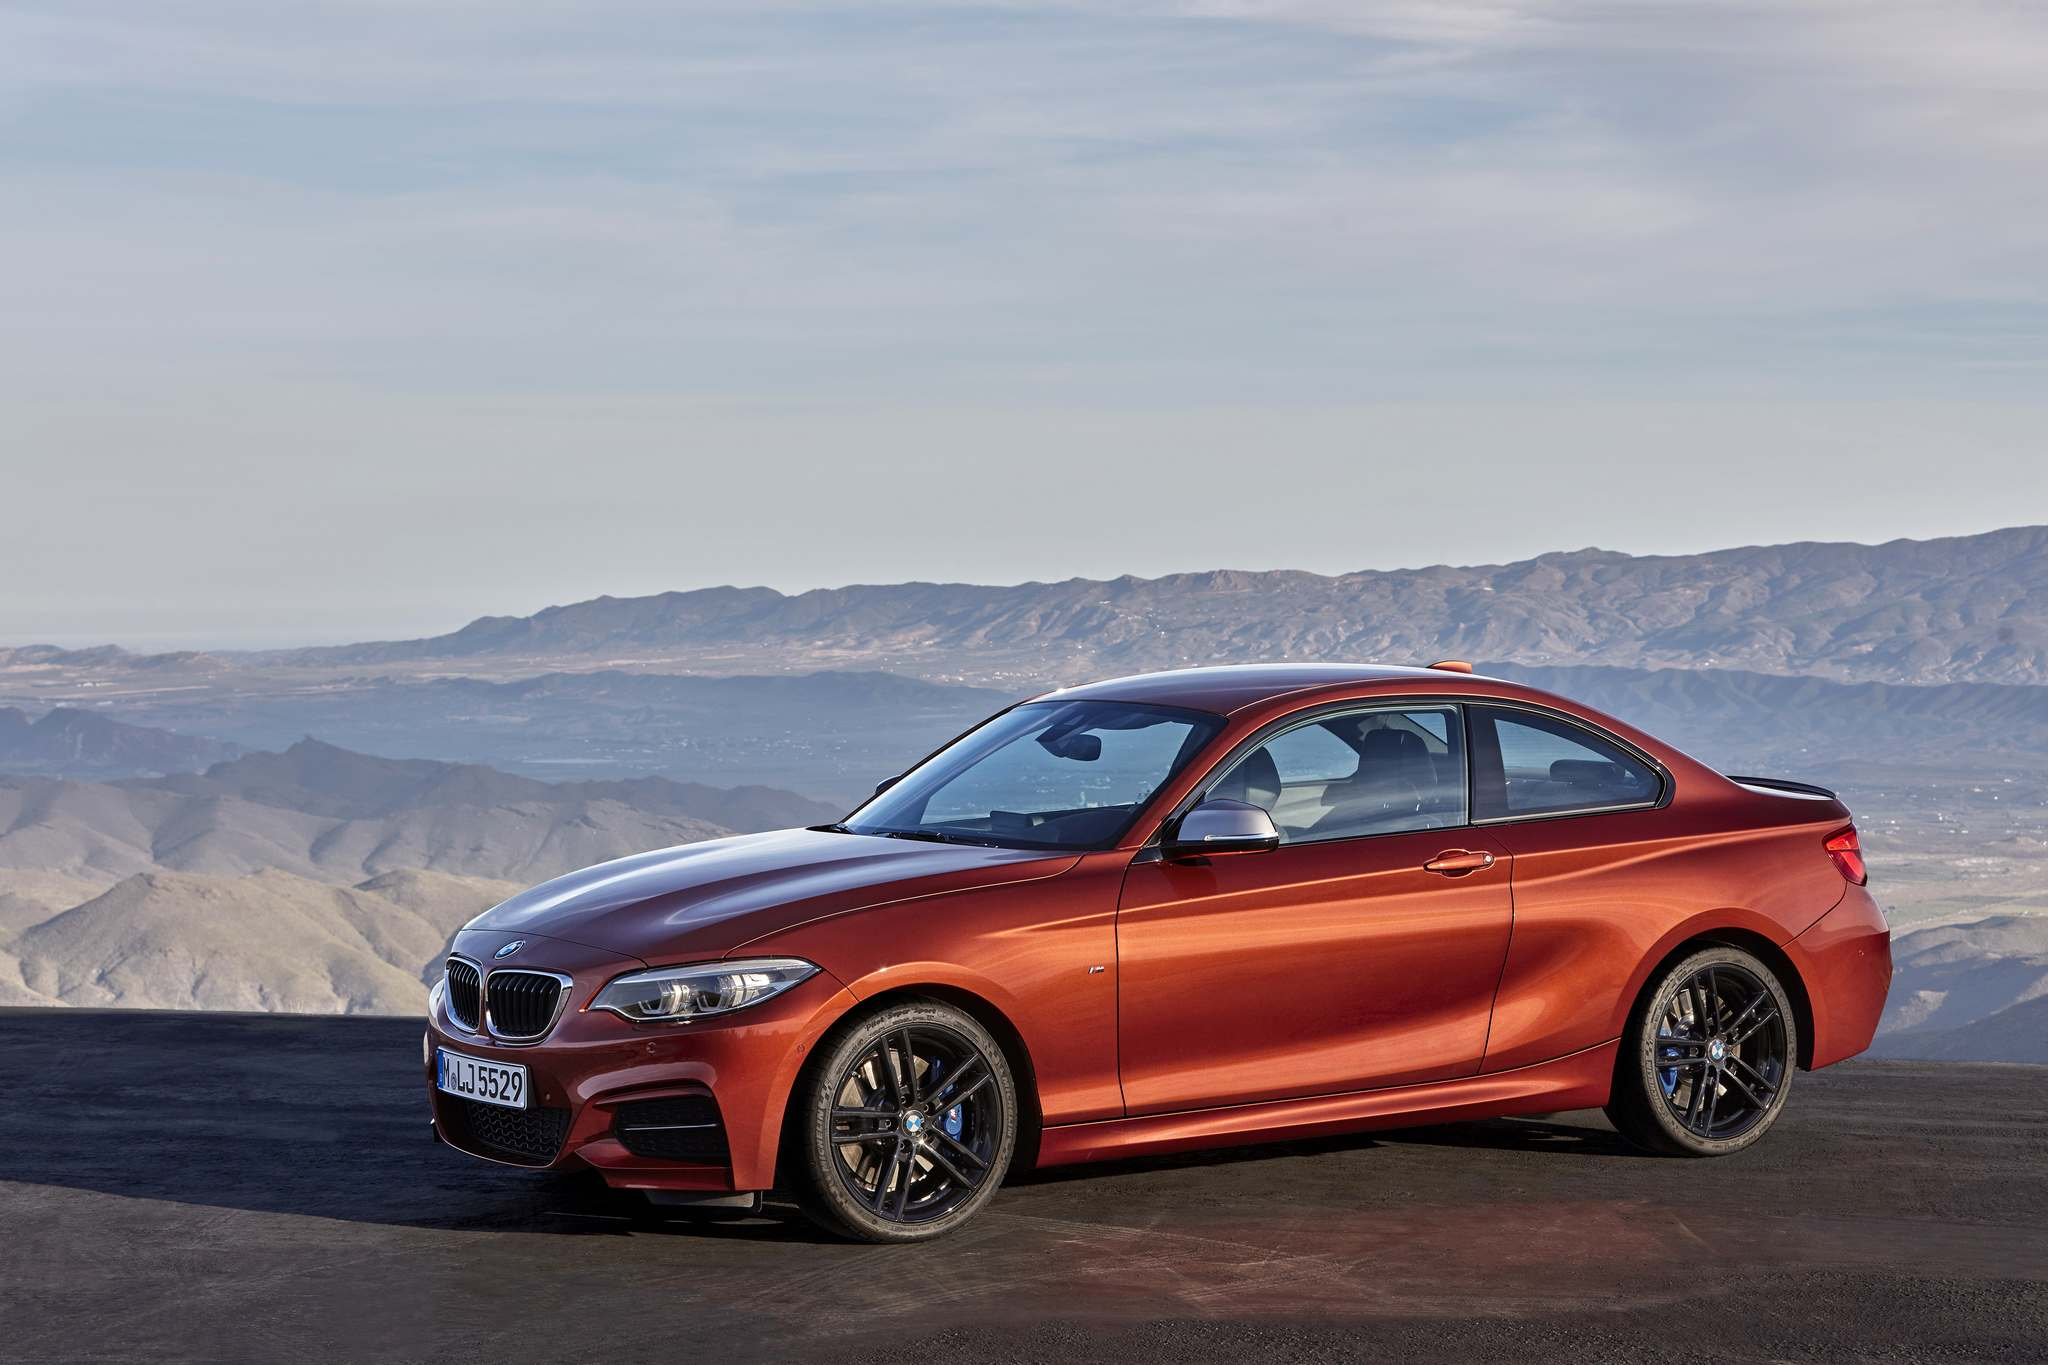 BMWThe new BMW M240i coupe made for one of the more memorable test drives of the year.